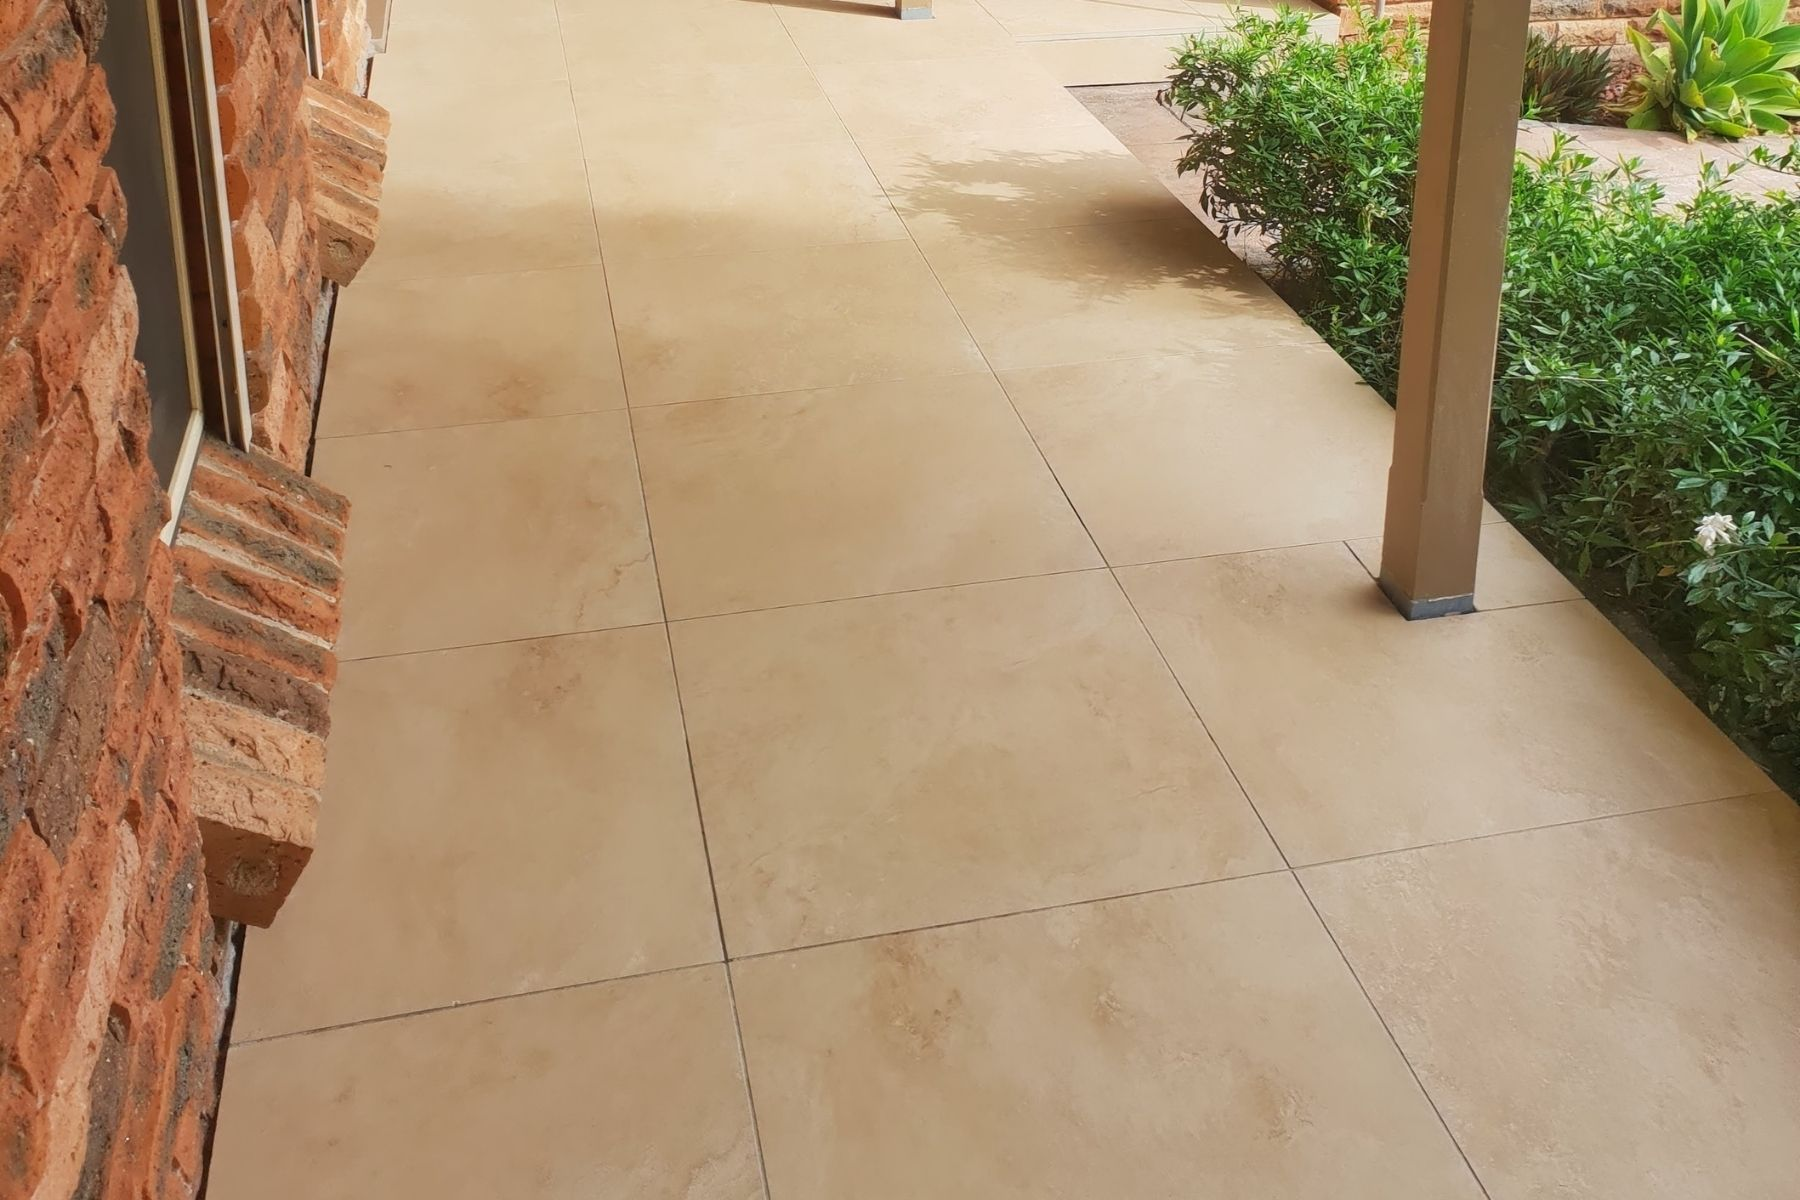 patio paved with walnut looking travertine pavers but in porcelain